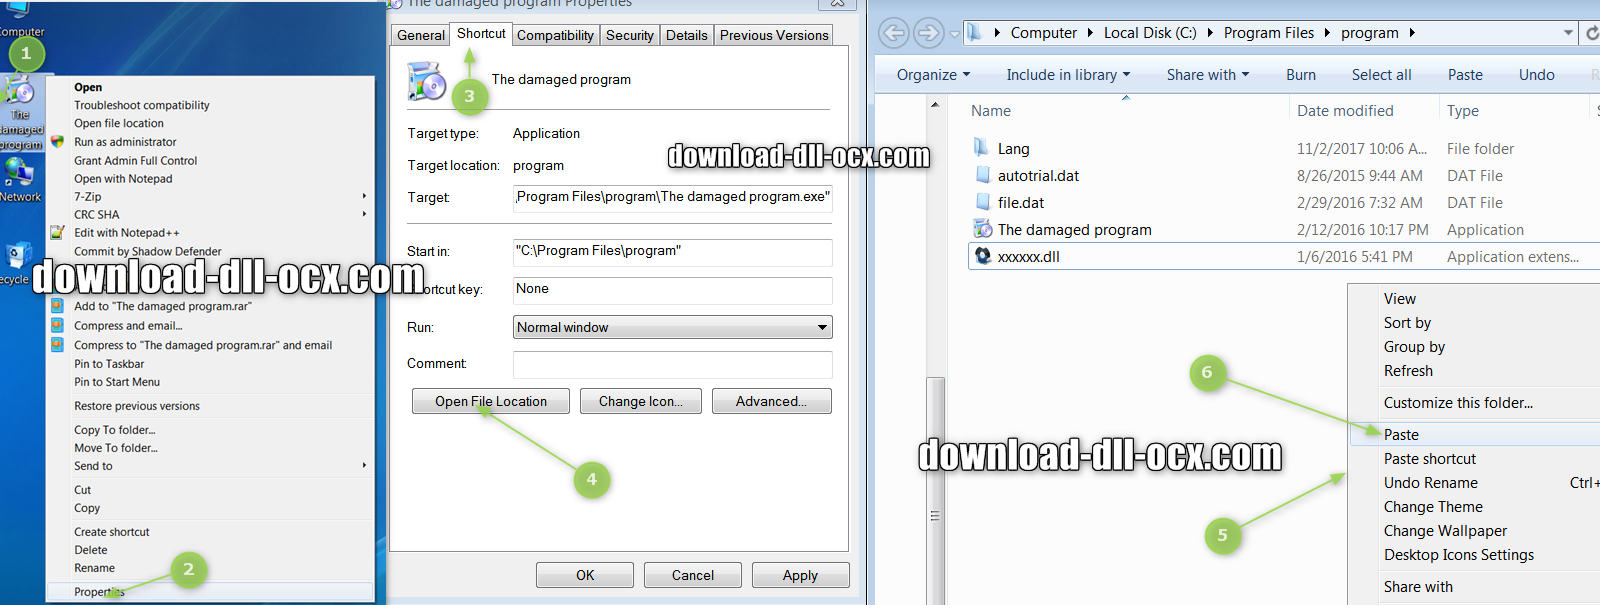 how to install rascalls.dll file? for fix missing